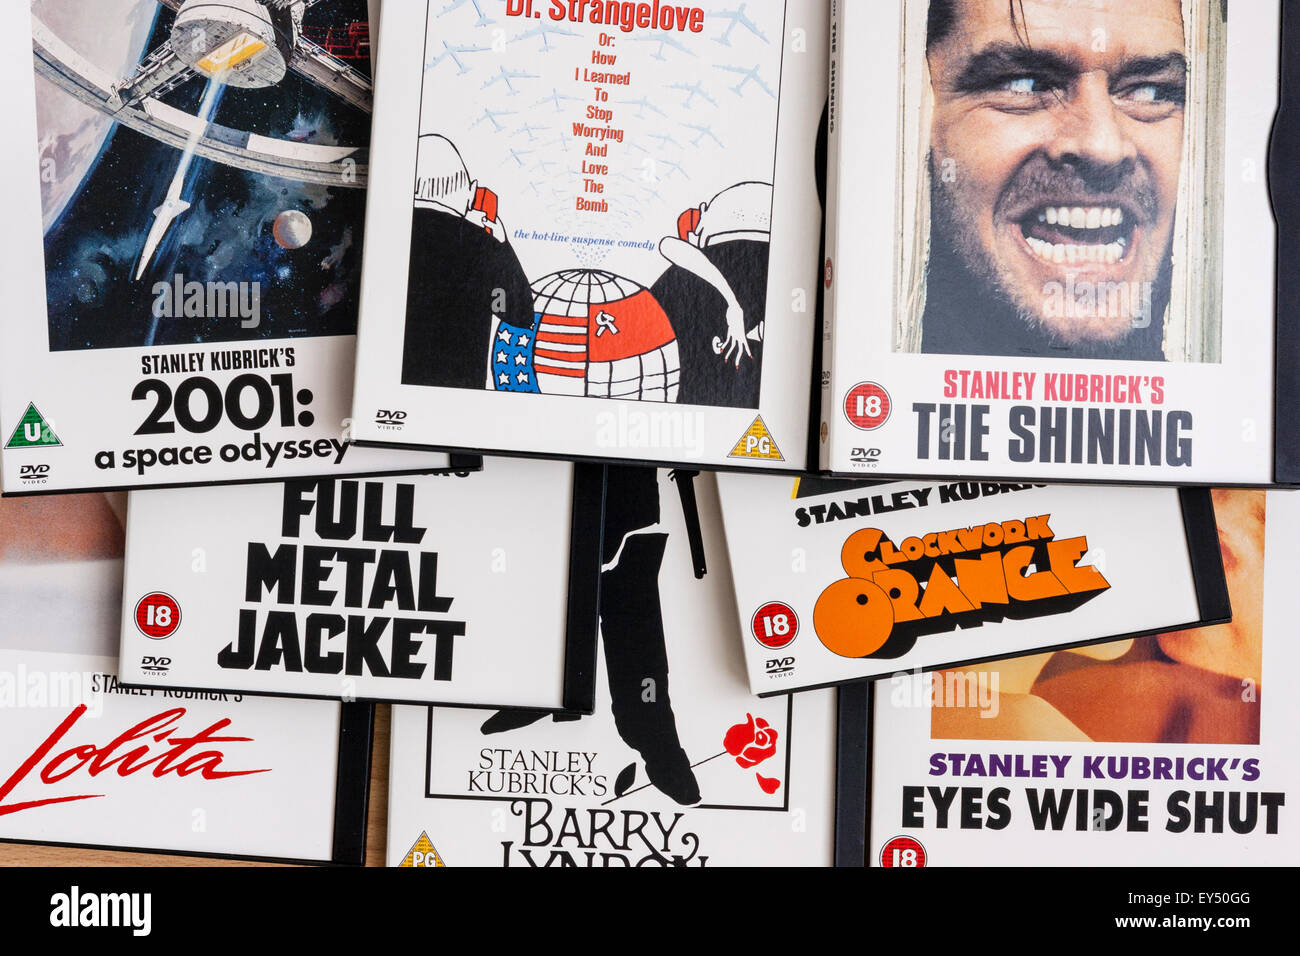 Array of Stanley Kubrick films on DVD showing covers and titles - Stock Image